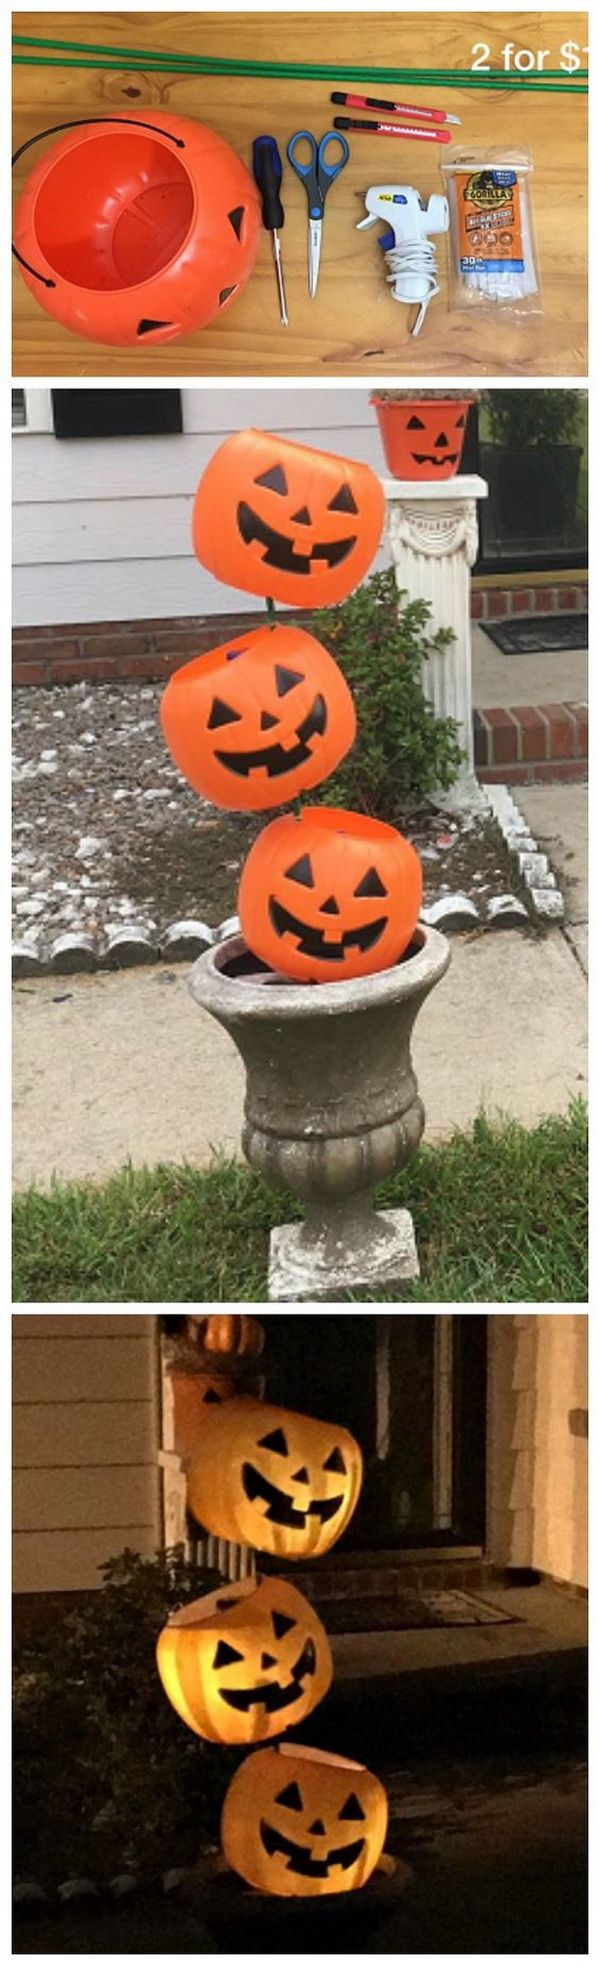 30+ Homemade Halloween Decoration Ideas Plastic pumpkins, Diy - Inexpensive Halloween Decorations